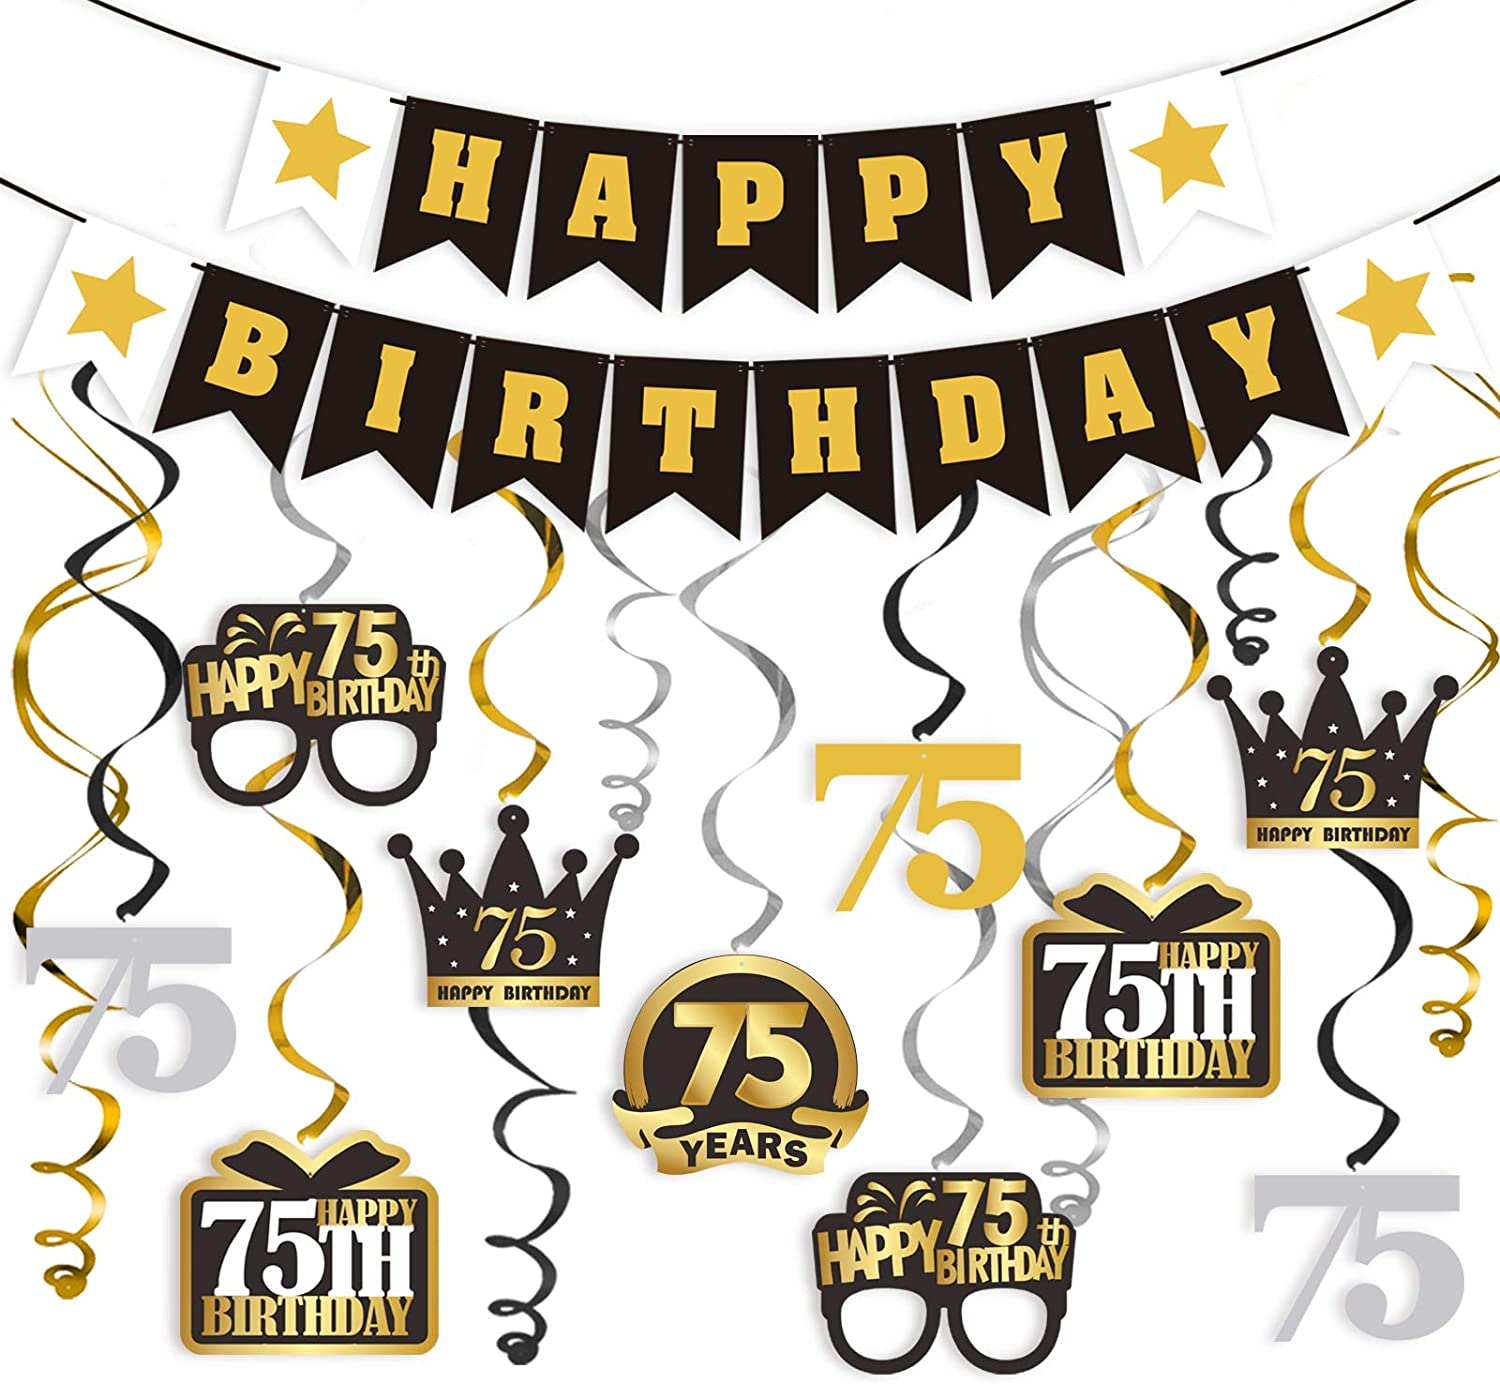 LINGTEER 75 Birthday Decorations Set - Happy 75th Birthday Party Swirls Streamers Crown Glasses Gift Box Sign | Happy Birthday Garland Banner Cheers to 75 Years Old Birthday Party Supplies